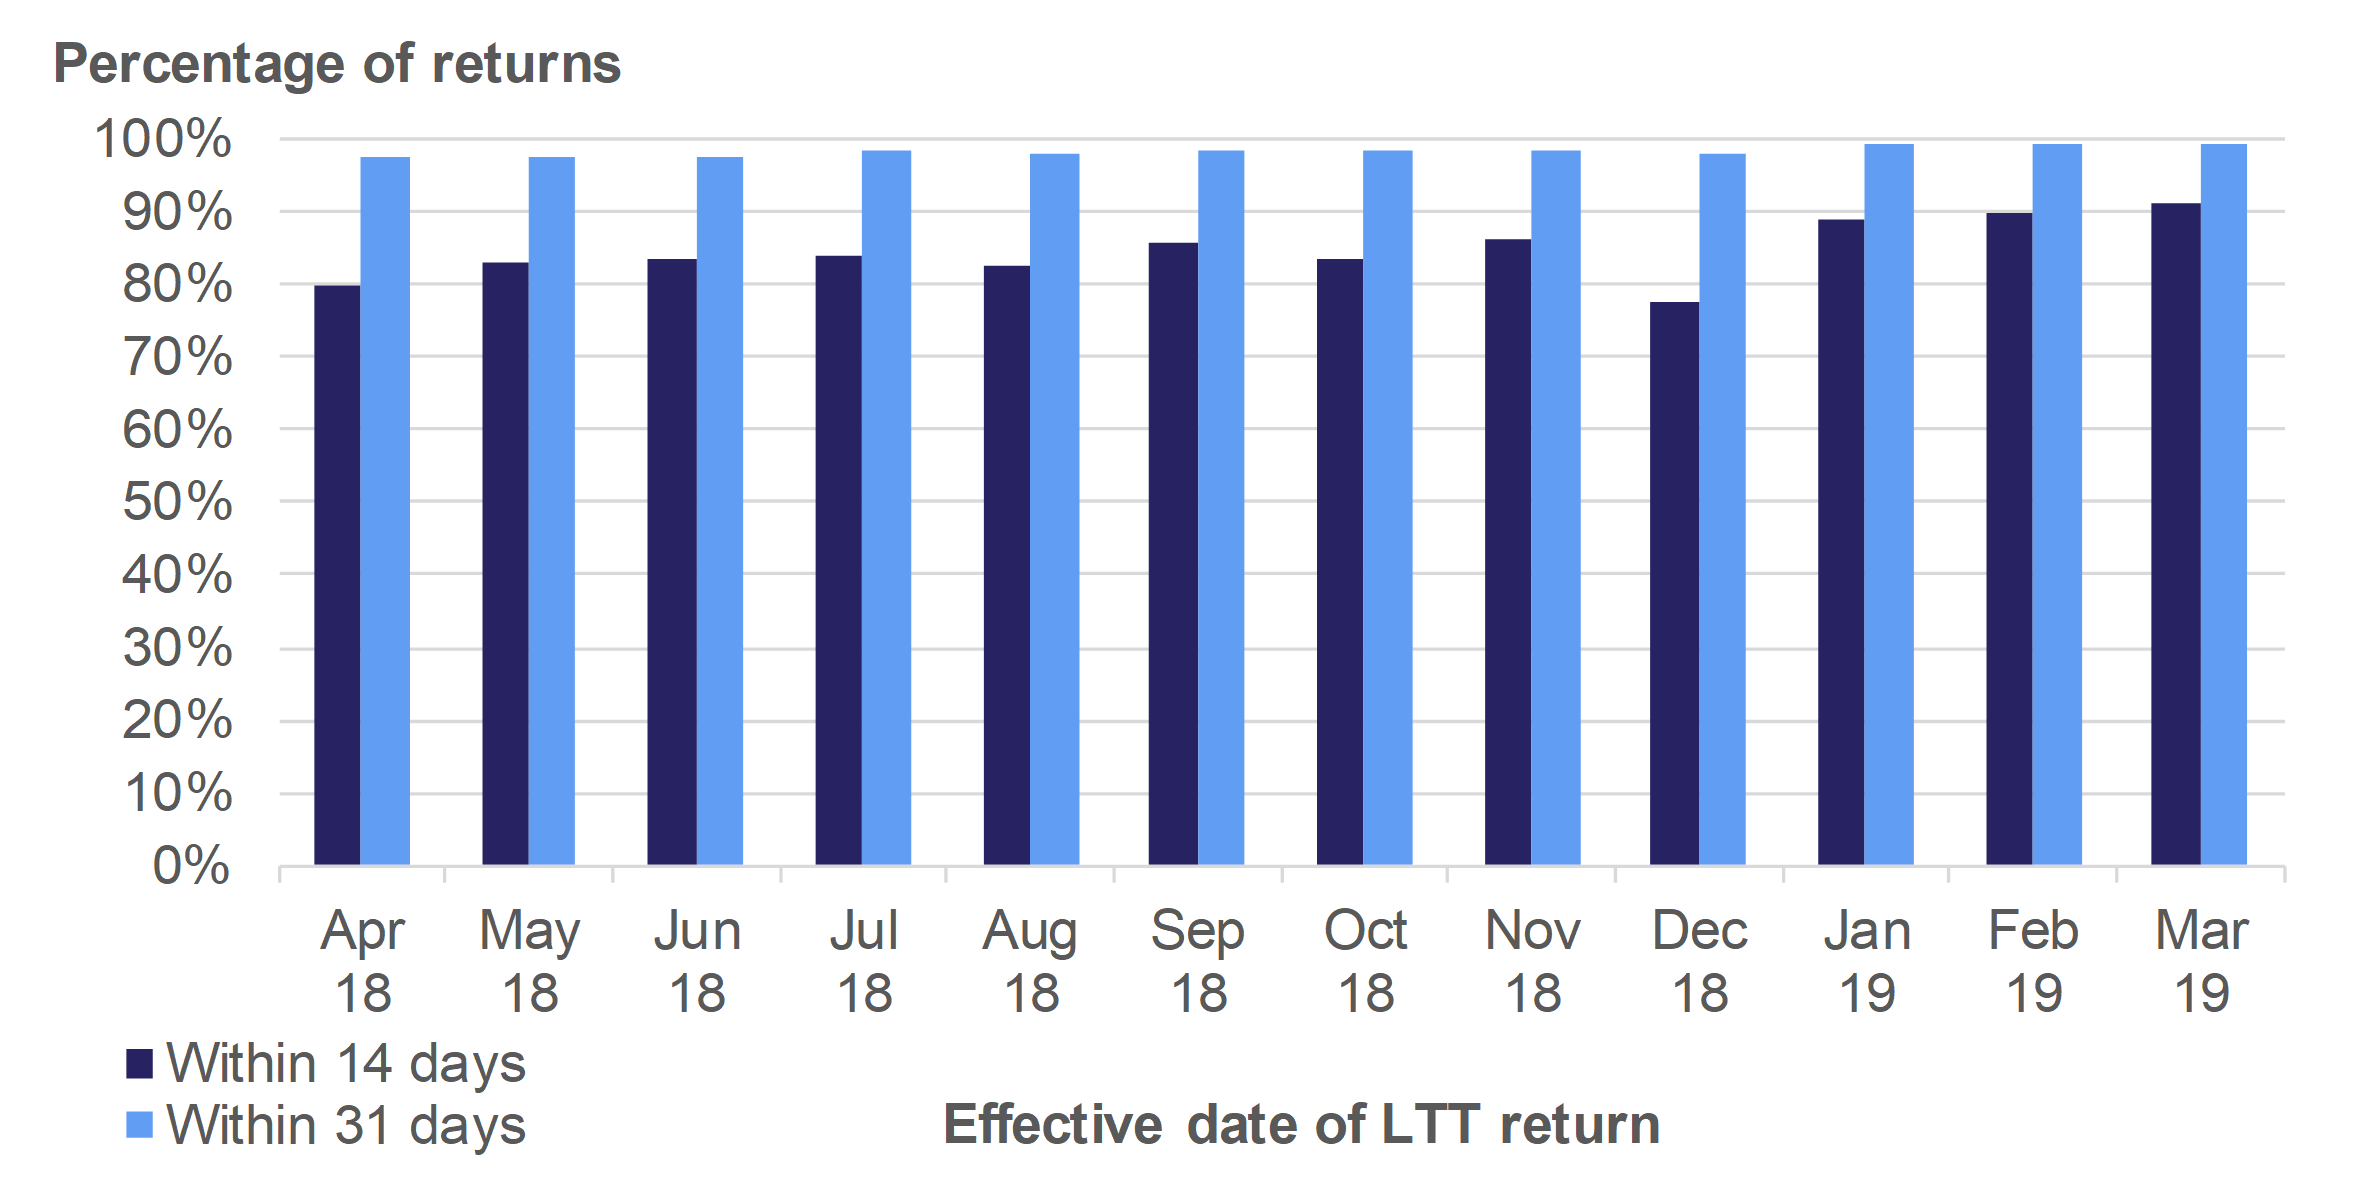 Figure 10.2 shows the monthly trends in the percentage of Land Transaction Tax returns received within 14 days and 31 days, for transactions effective in April 2018 to March 2019.